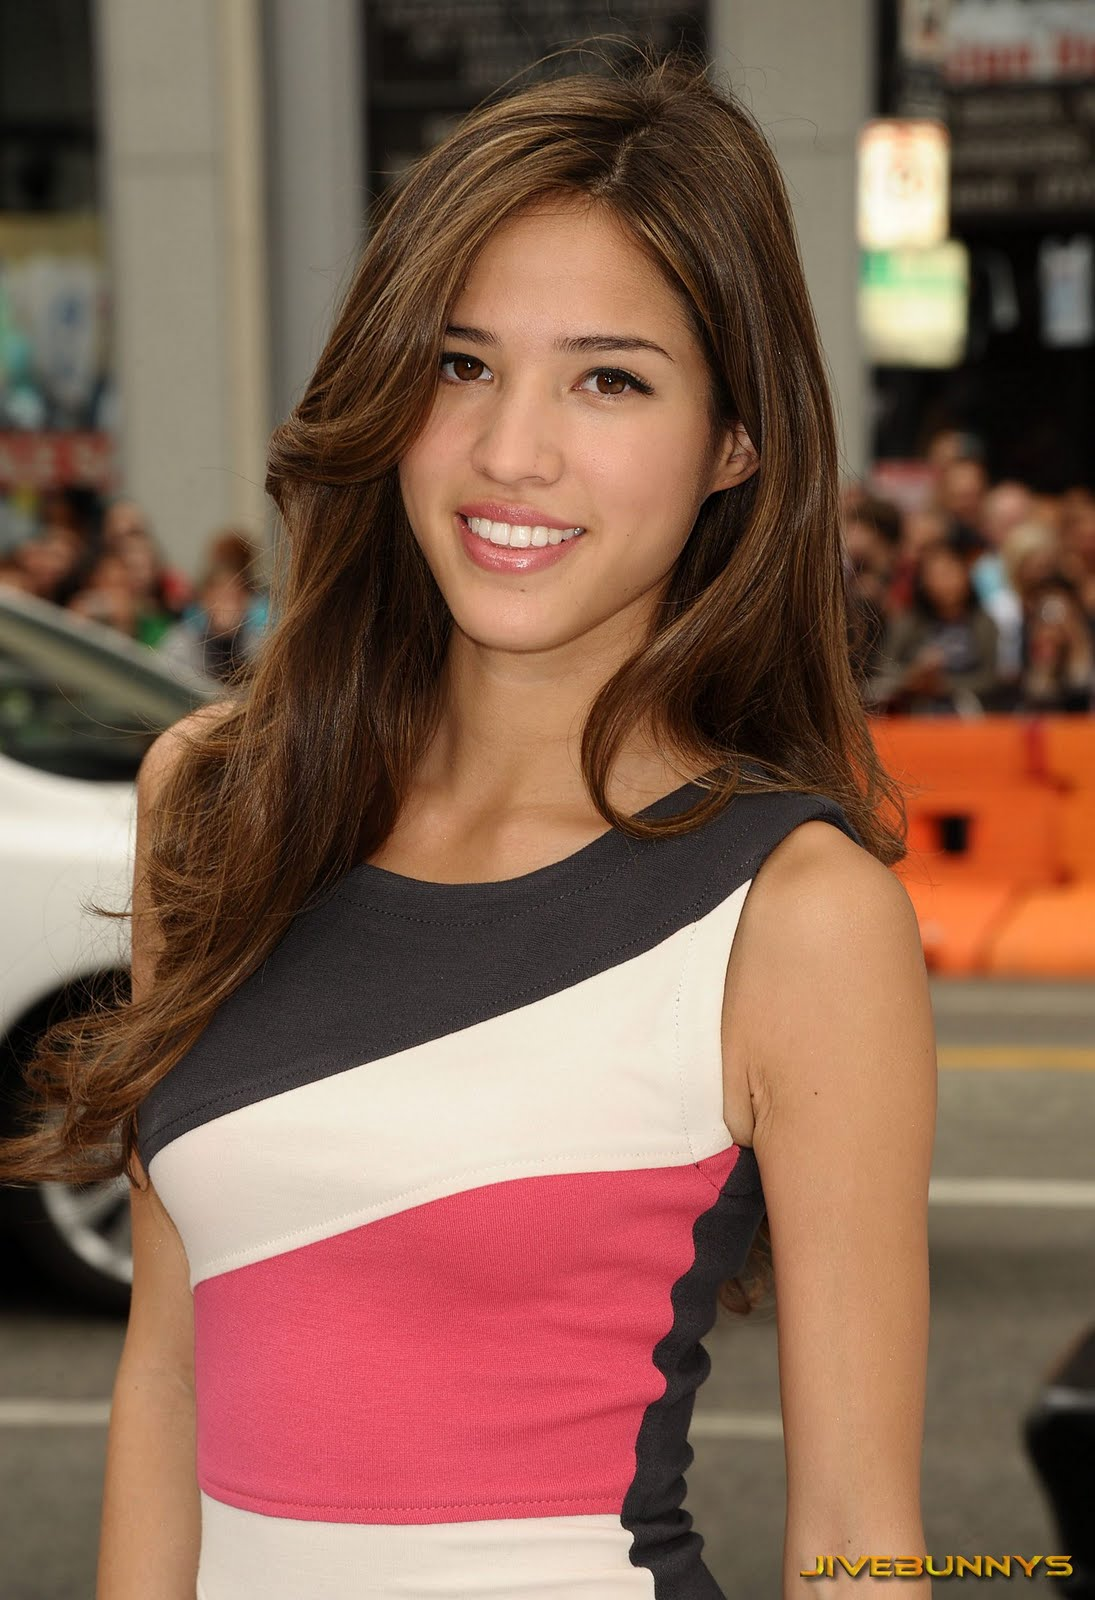 kelsey chow hot sex scandals